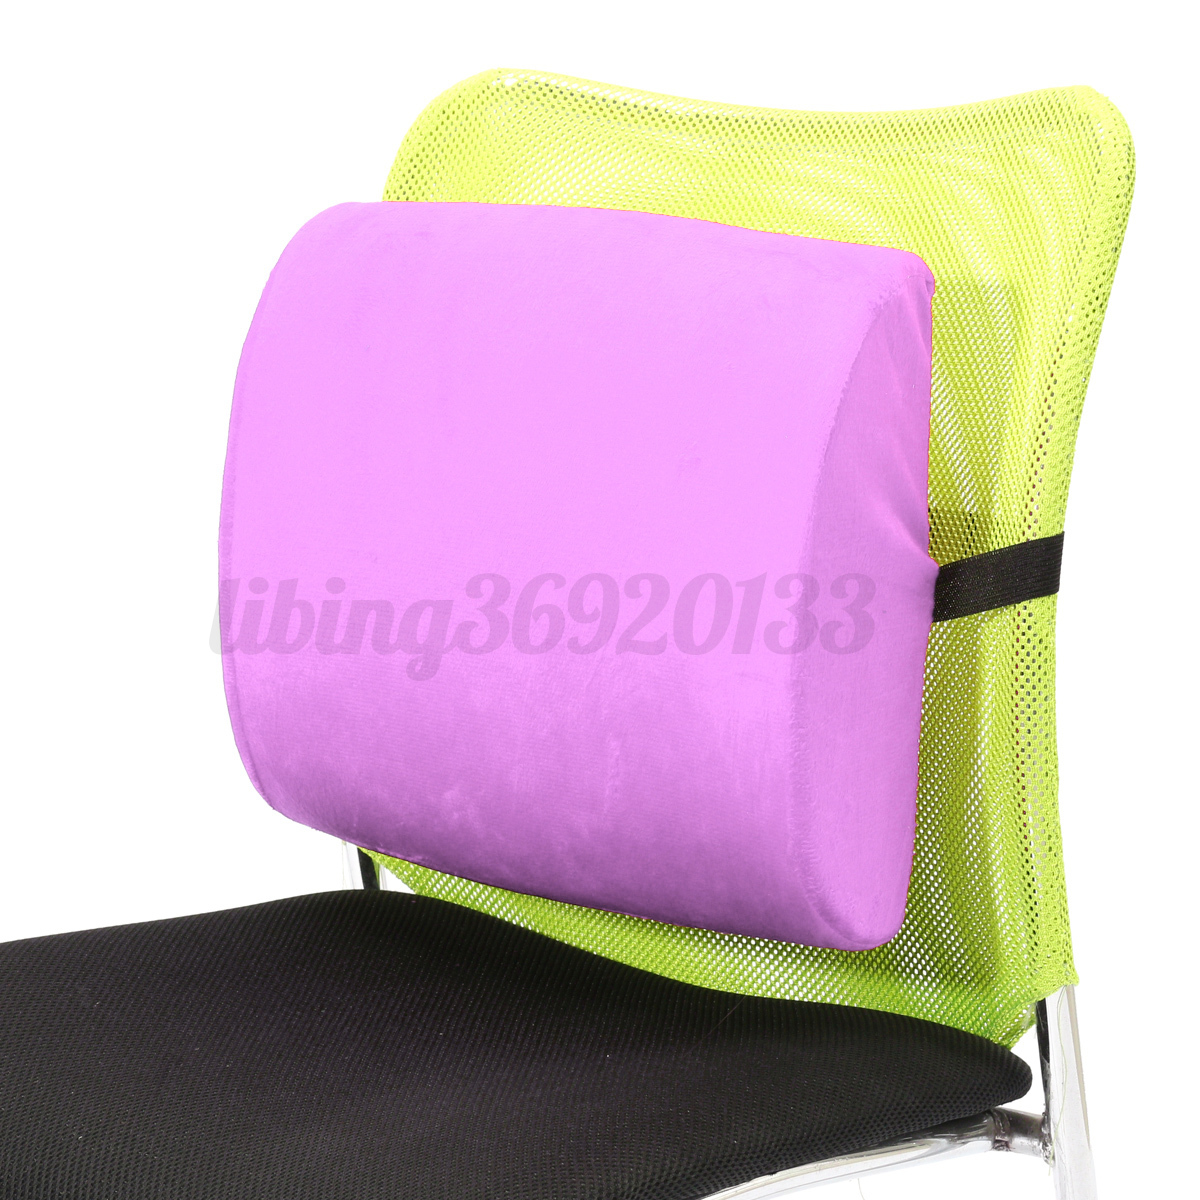 Back Support Chair Memory Foam Lumbar Cushion Travel Pillow Car Flight Seat